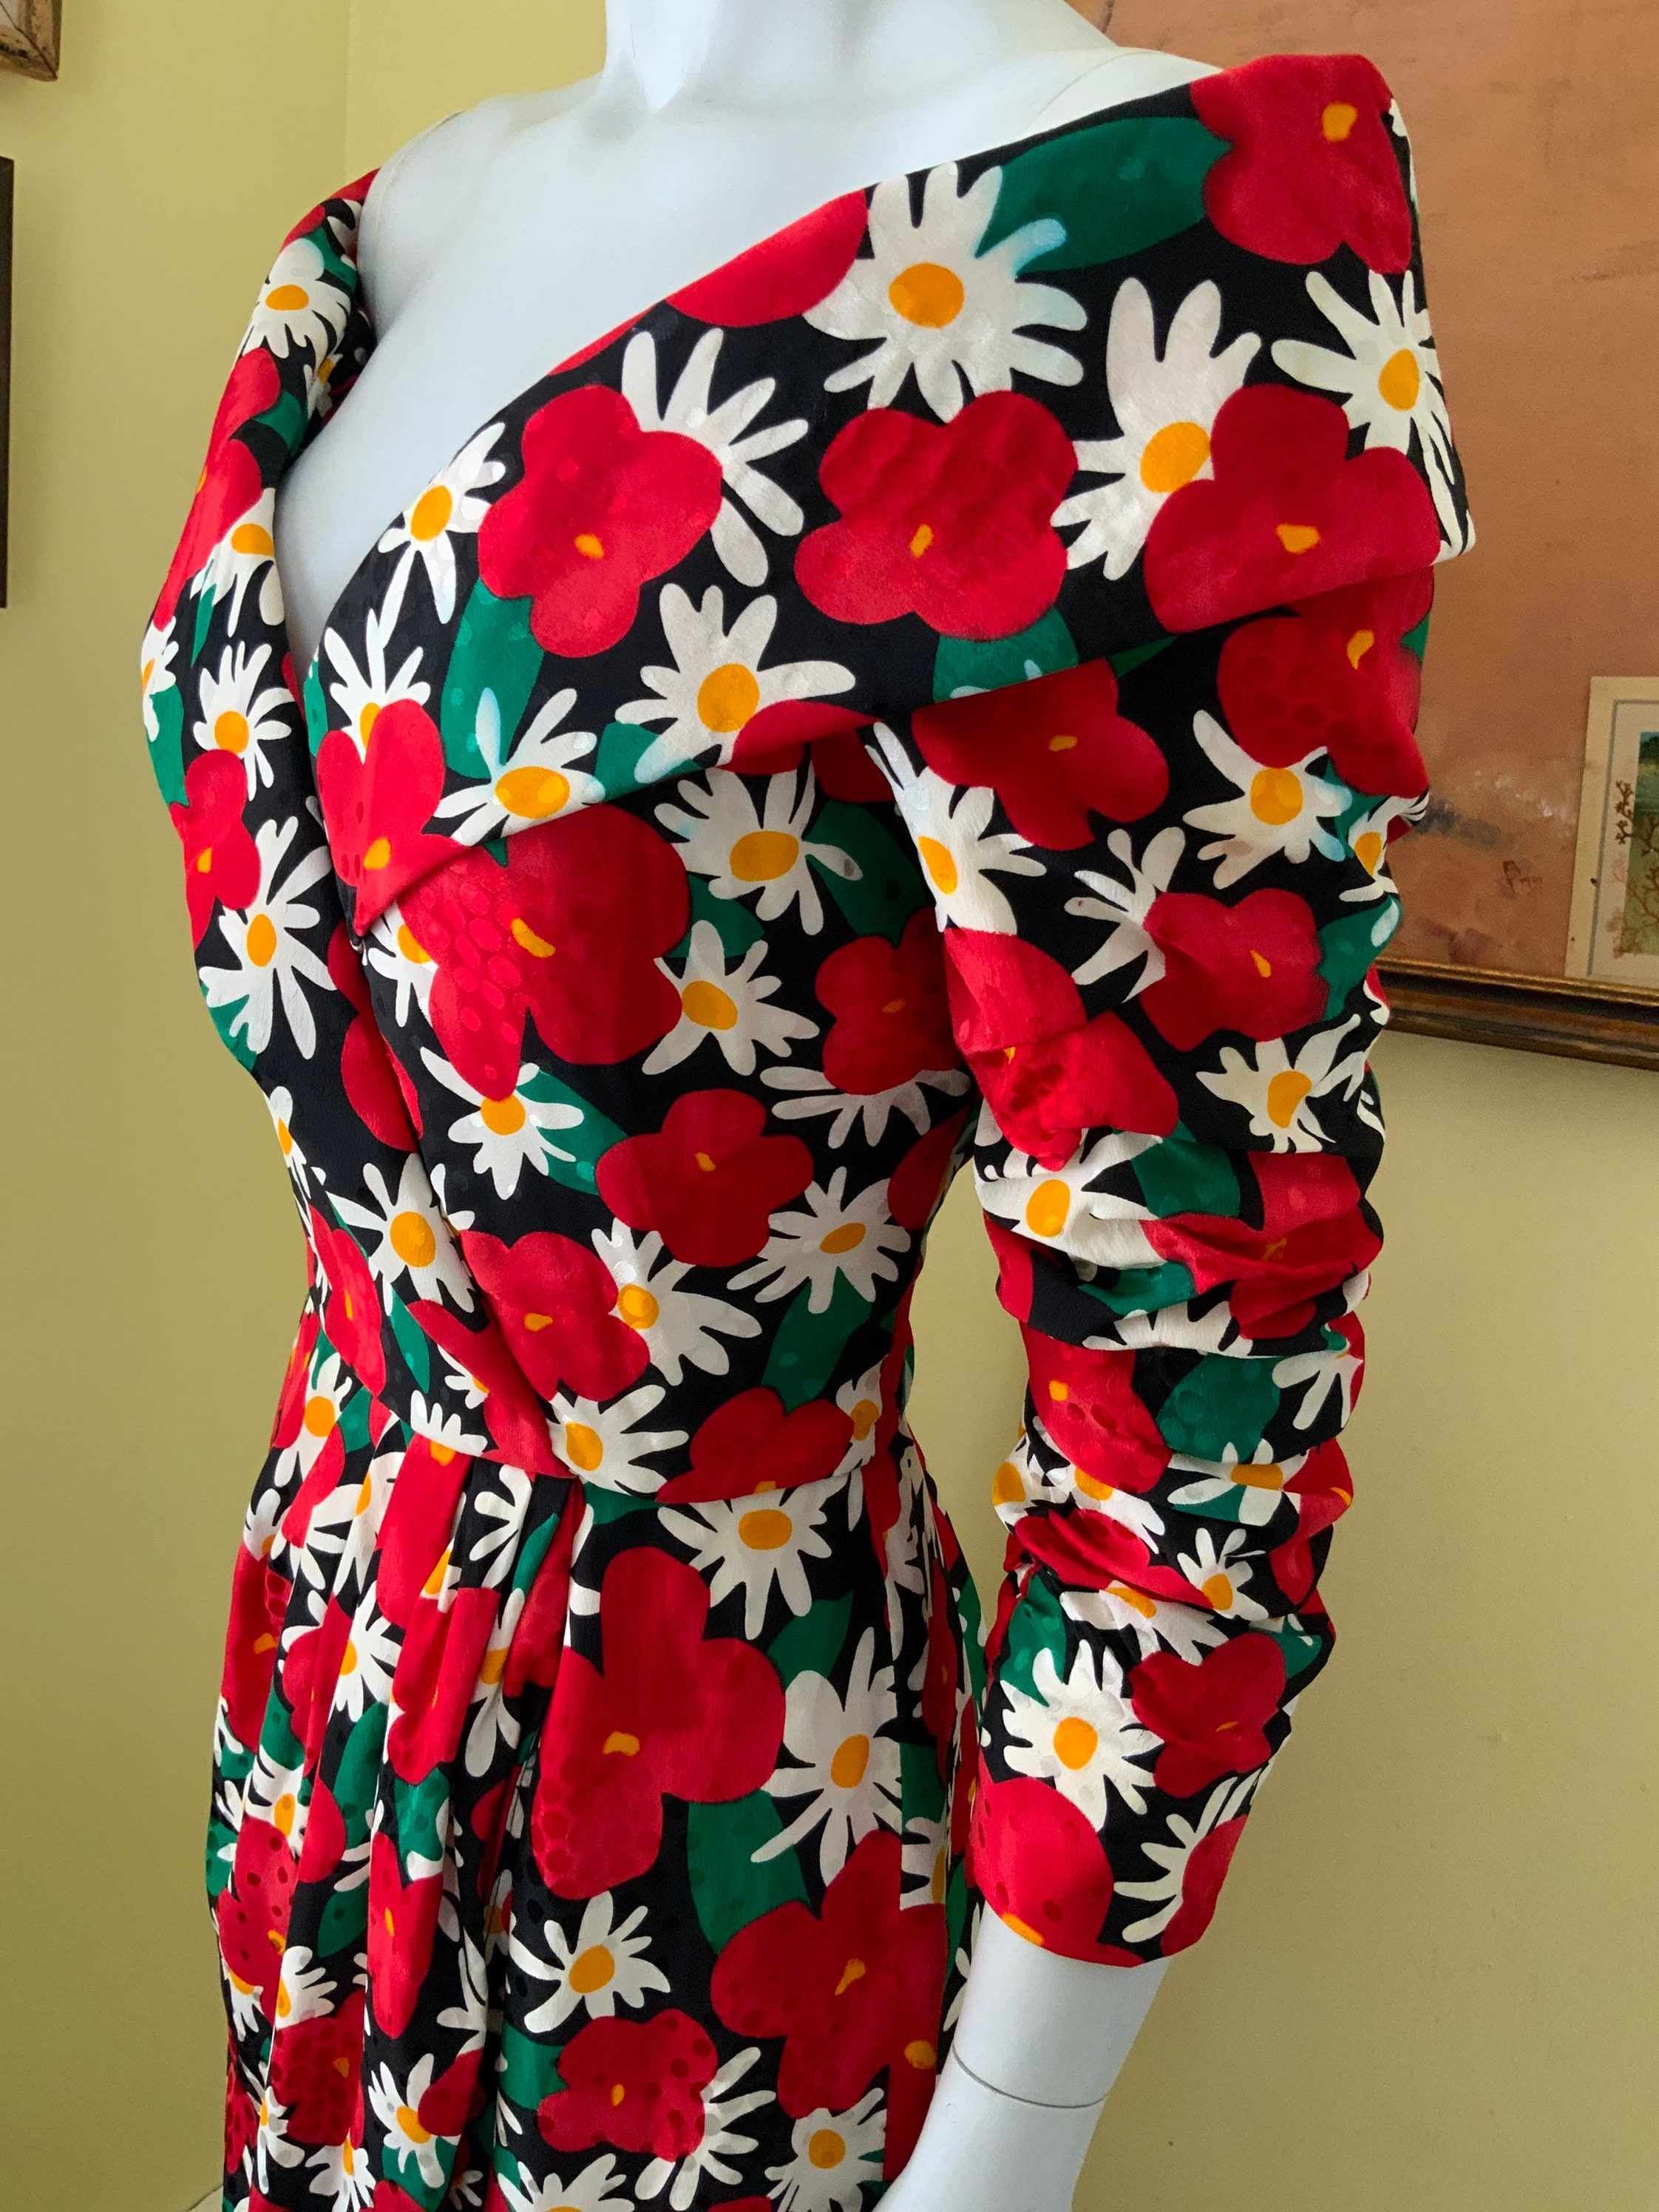 80s Dresses   Casual to Party Dresses 1980s, Scaasi Boutique, Bold Red Floral, Prom, Cocktail, Party Dress, Size S $0.00 AT vintagedancer.com